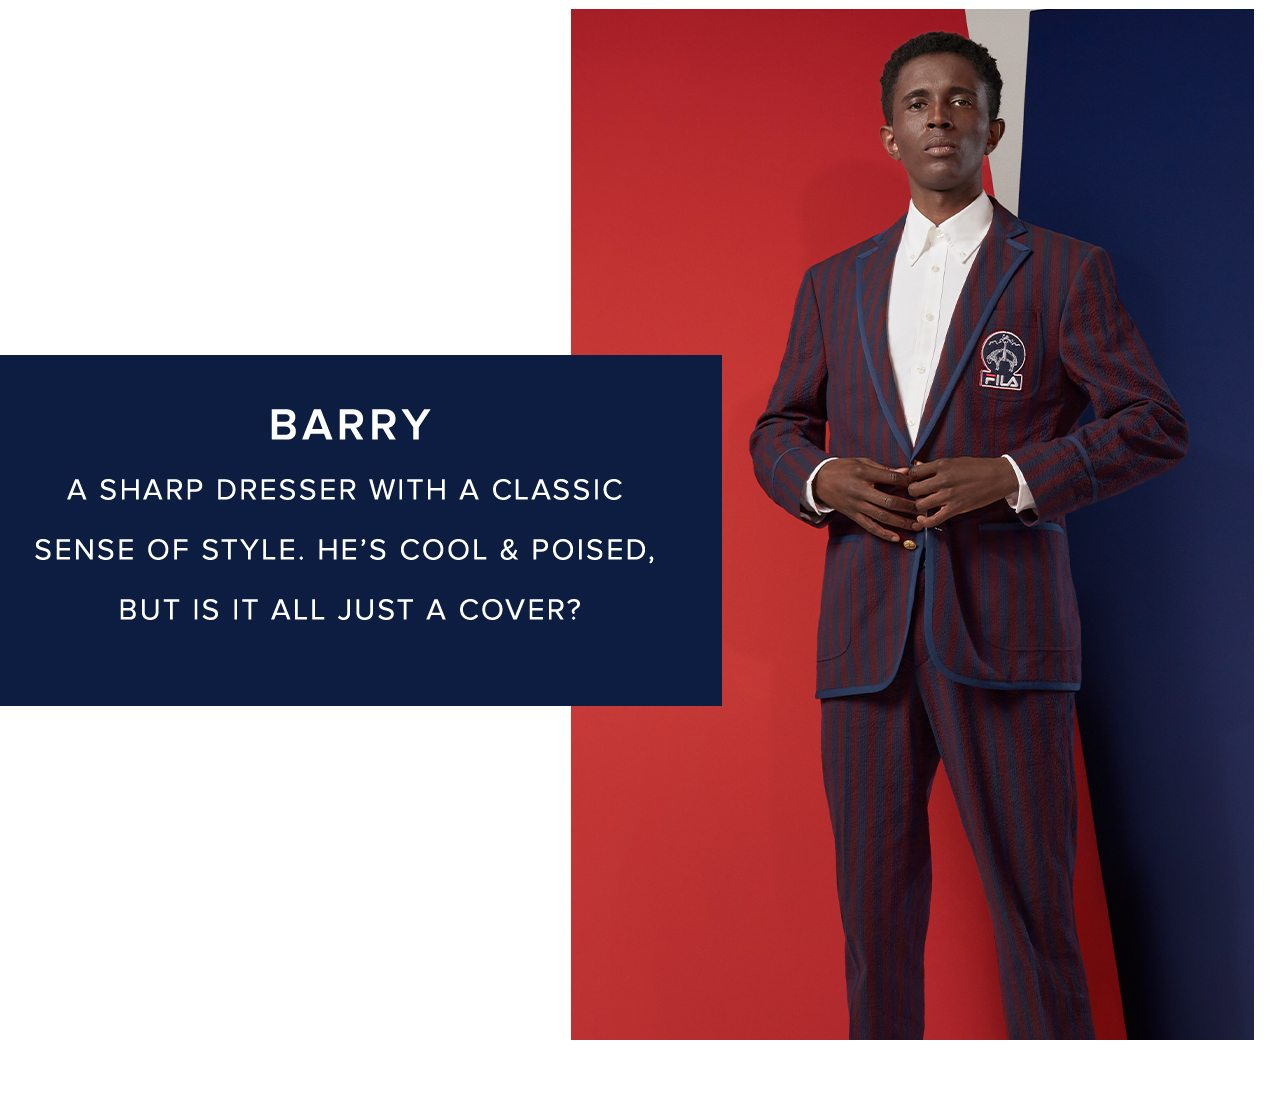 Barry A sharp dresser with a classic sense of style. He's cool and poised, but is it all just a cover?